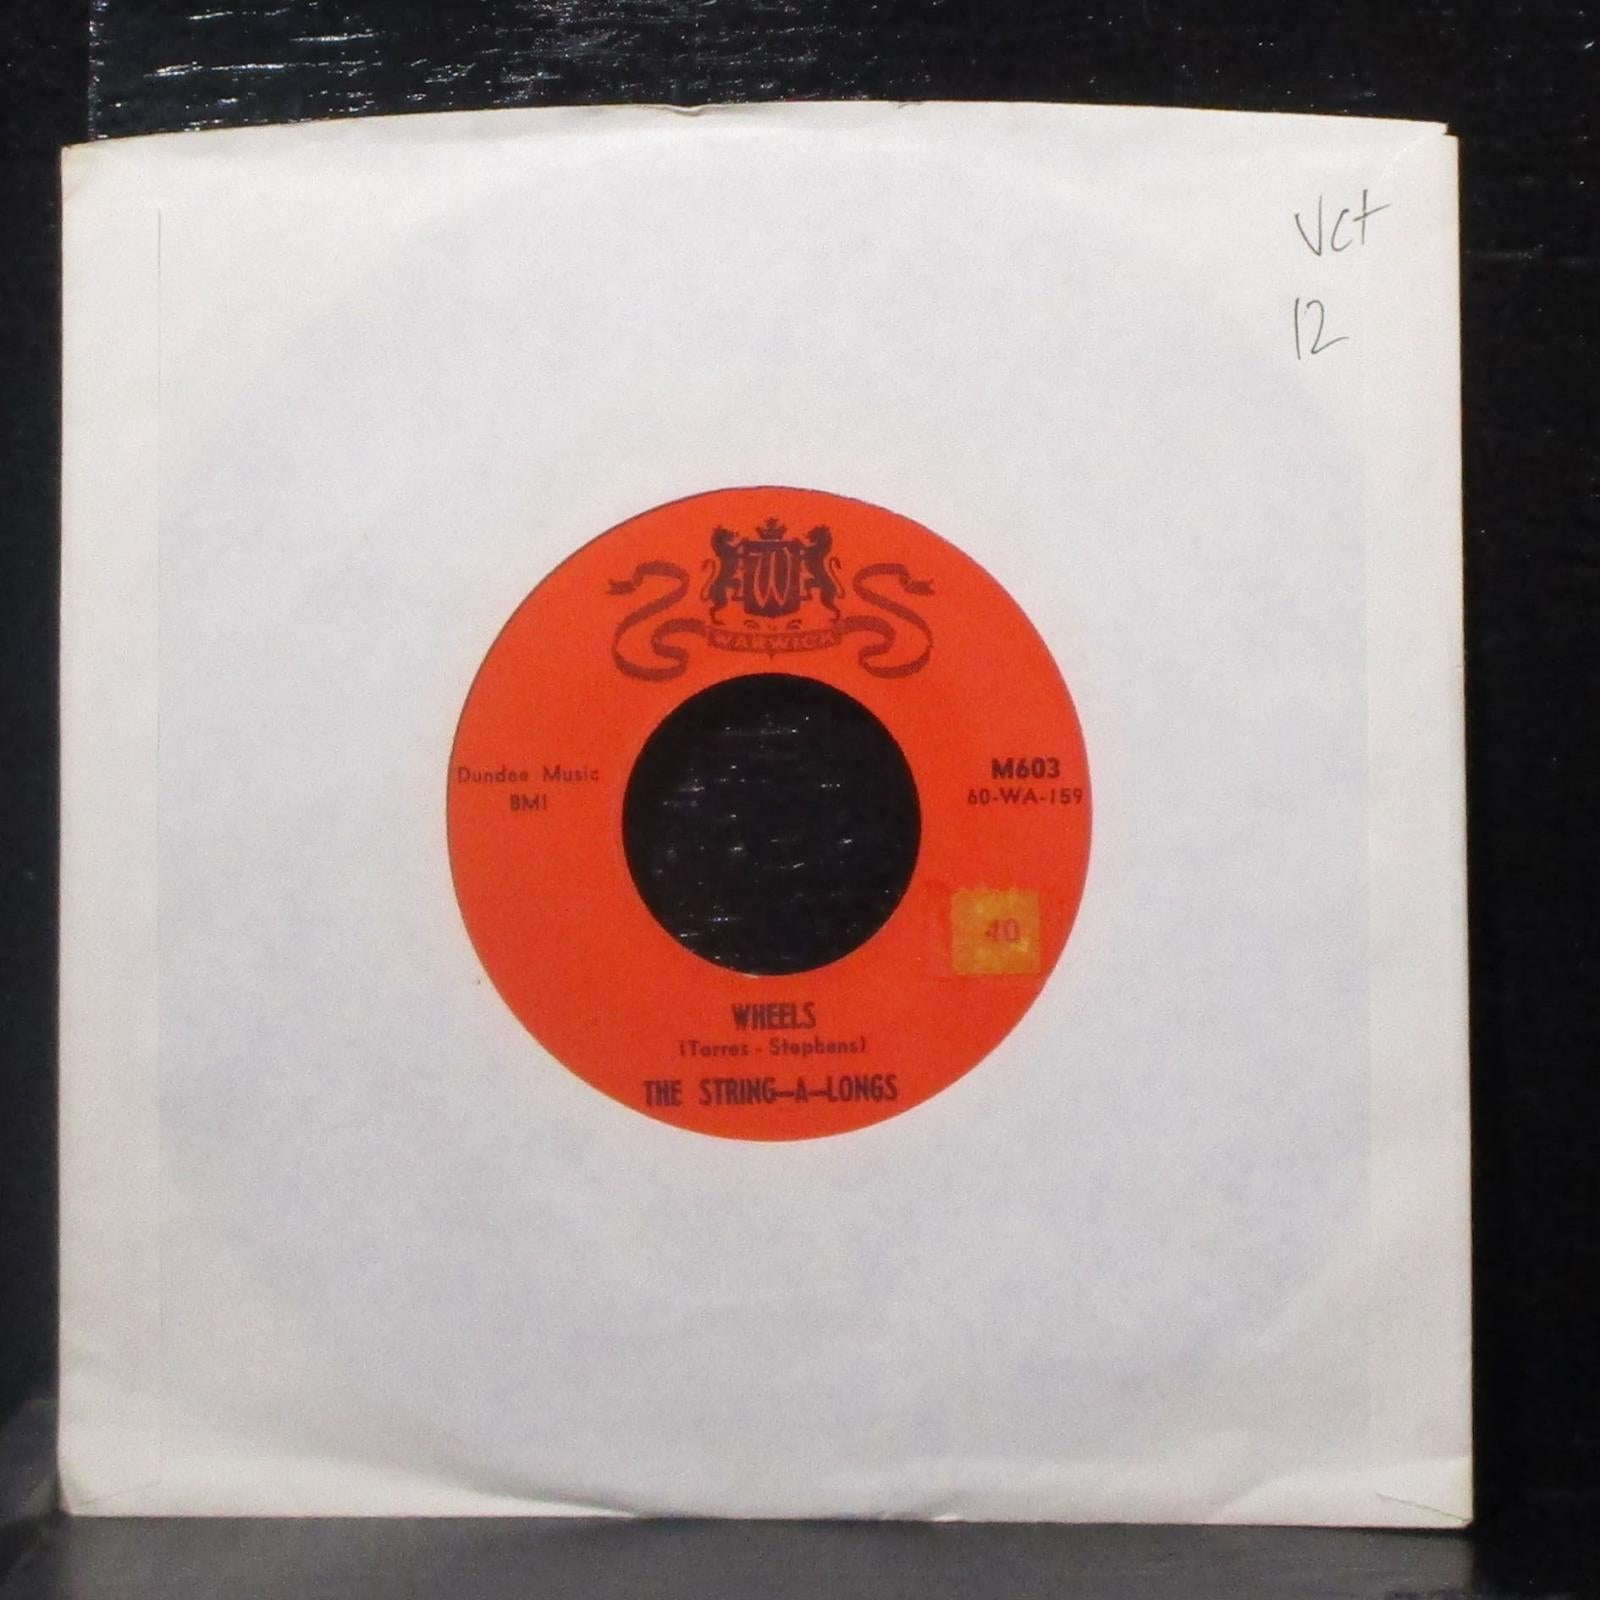 "The String-A-Longs - Wheels / Am I Asking Too Much? 7"" VG+ Vinyl 45 Warwick M603"